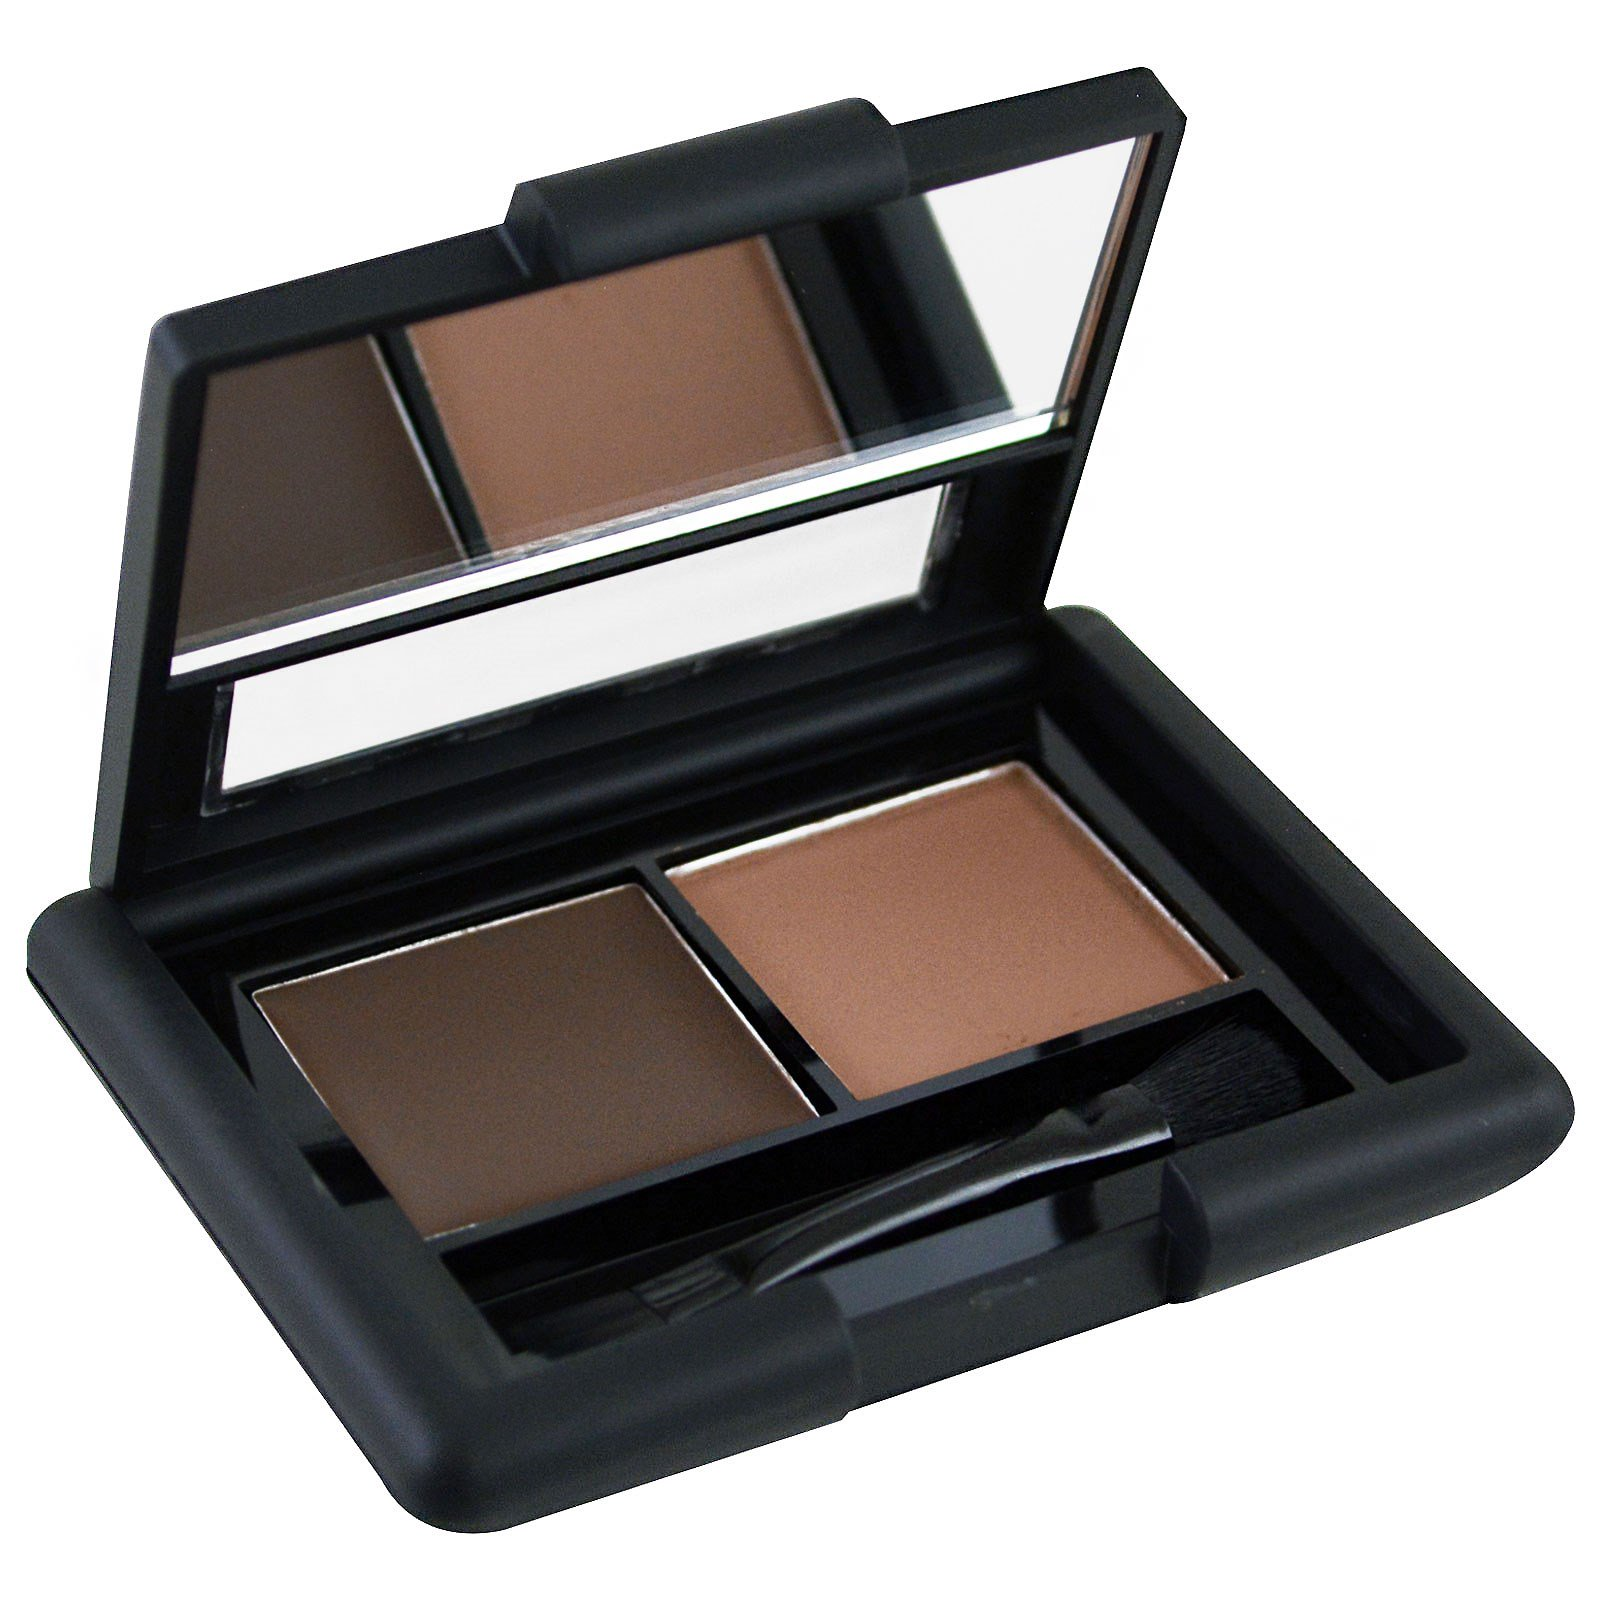 Elf Cosmetics Eyebrow Kit Gel Powder Medium Gel 005 Oz